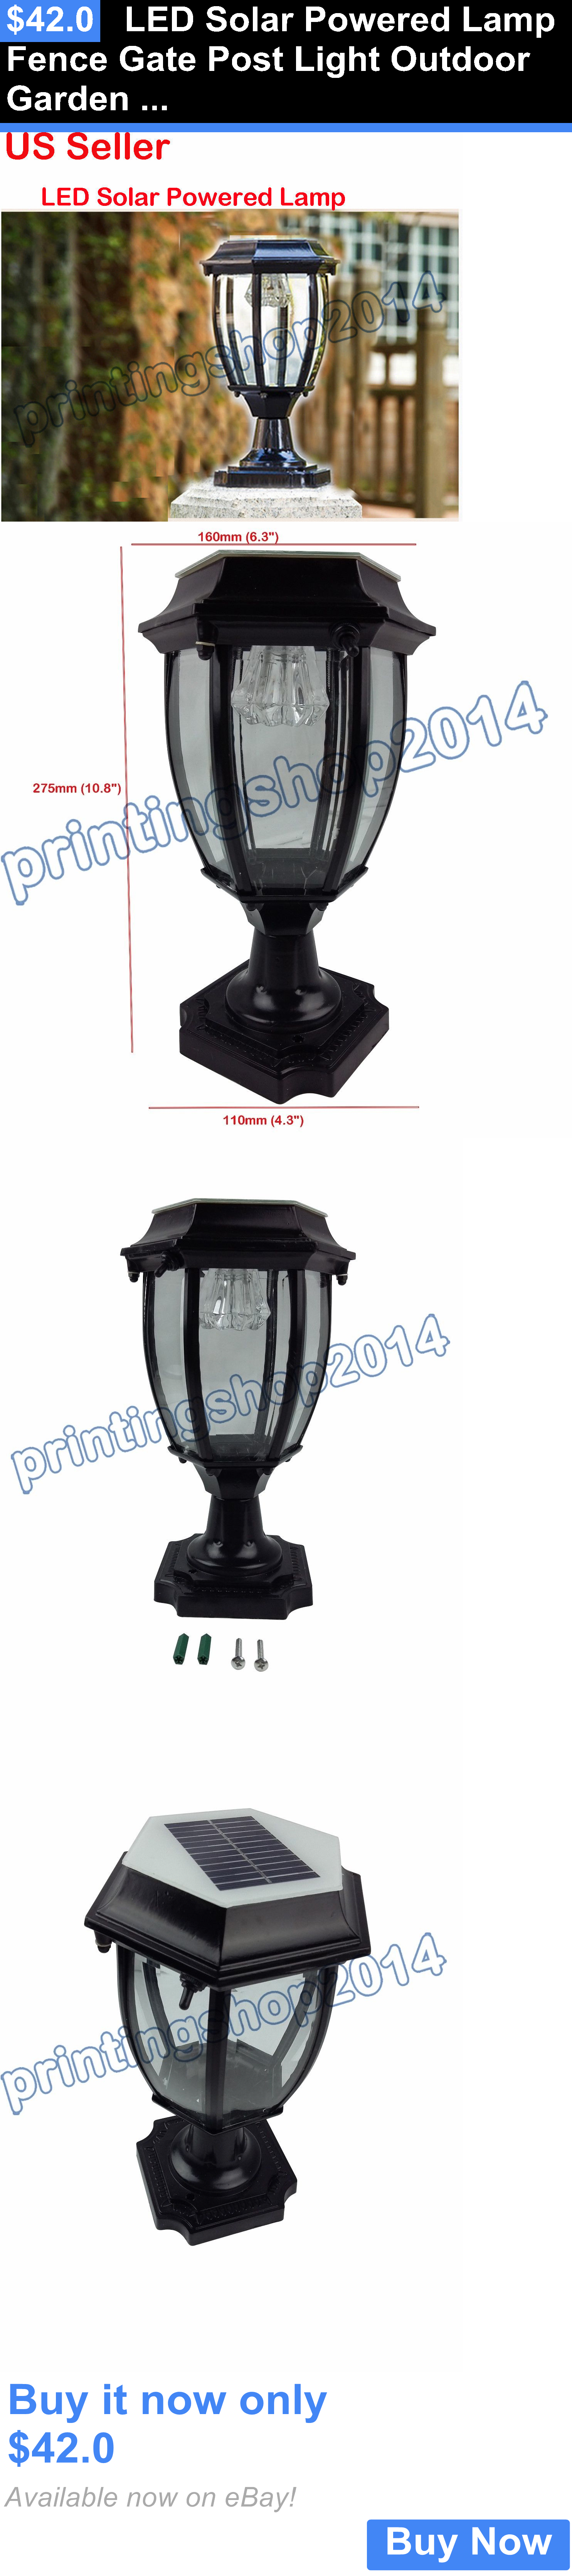 farm and garden Led Solar Powered Lamp Fence Gate Post